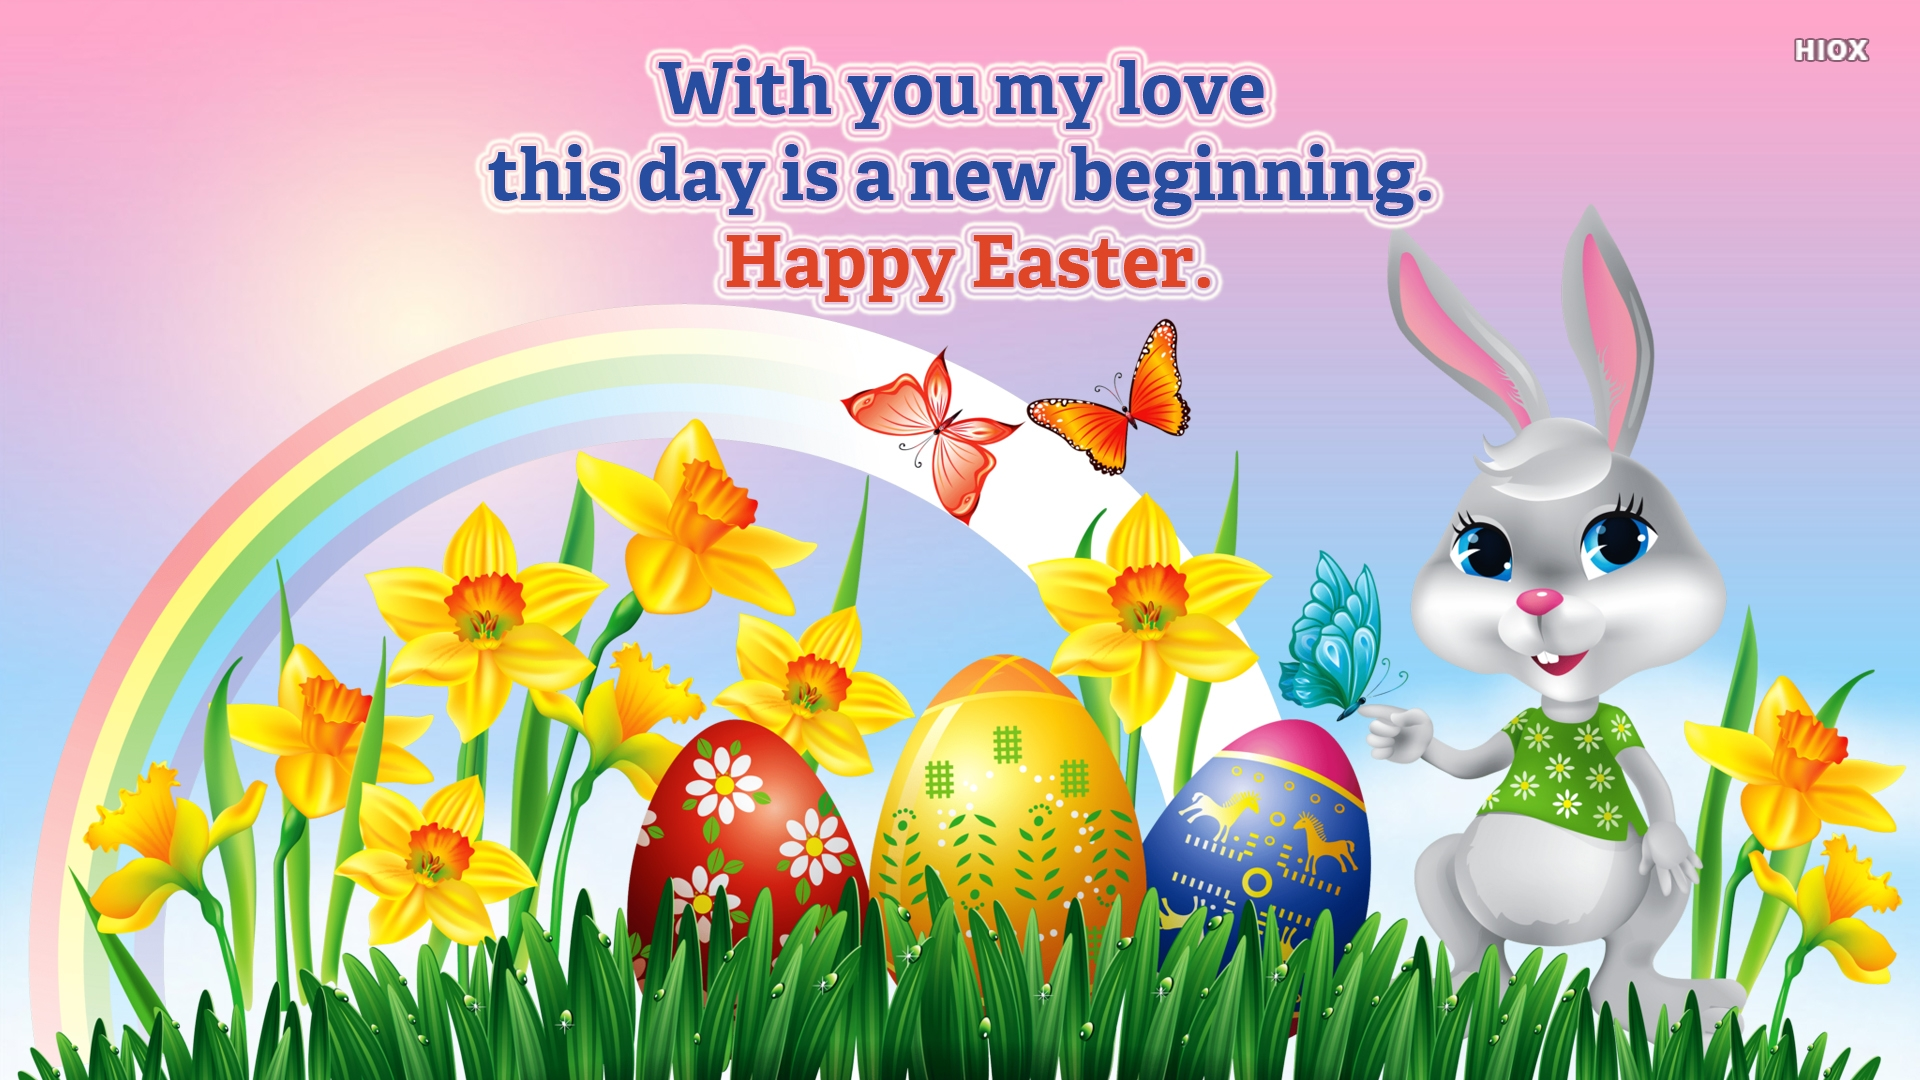 With You My Love This Day is A New Beginning. Happy Easter.